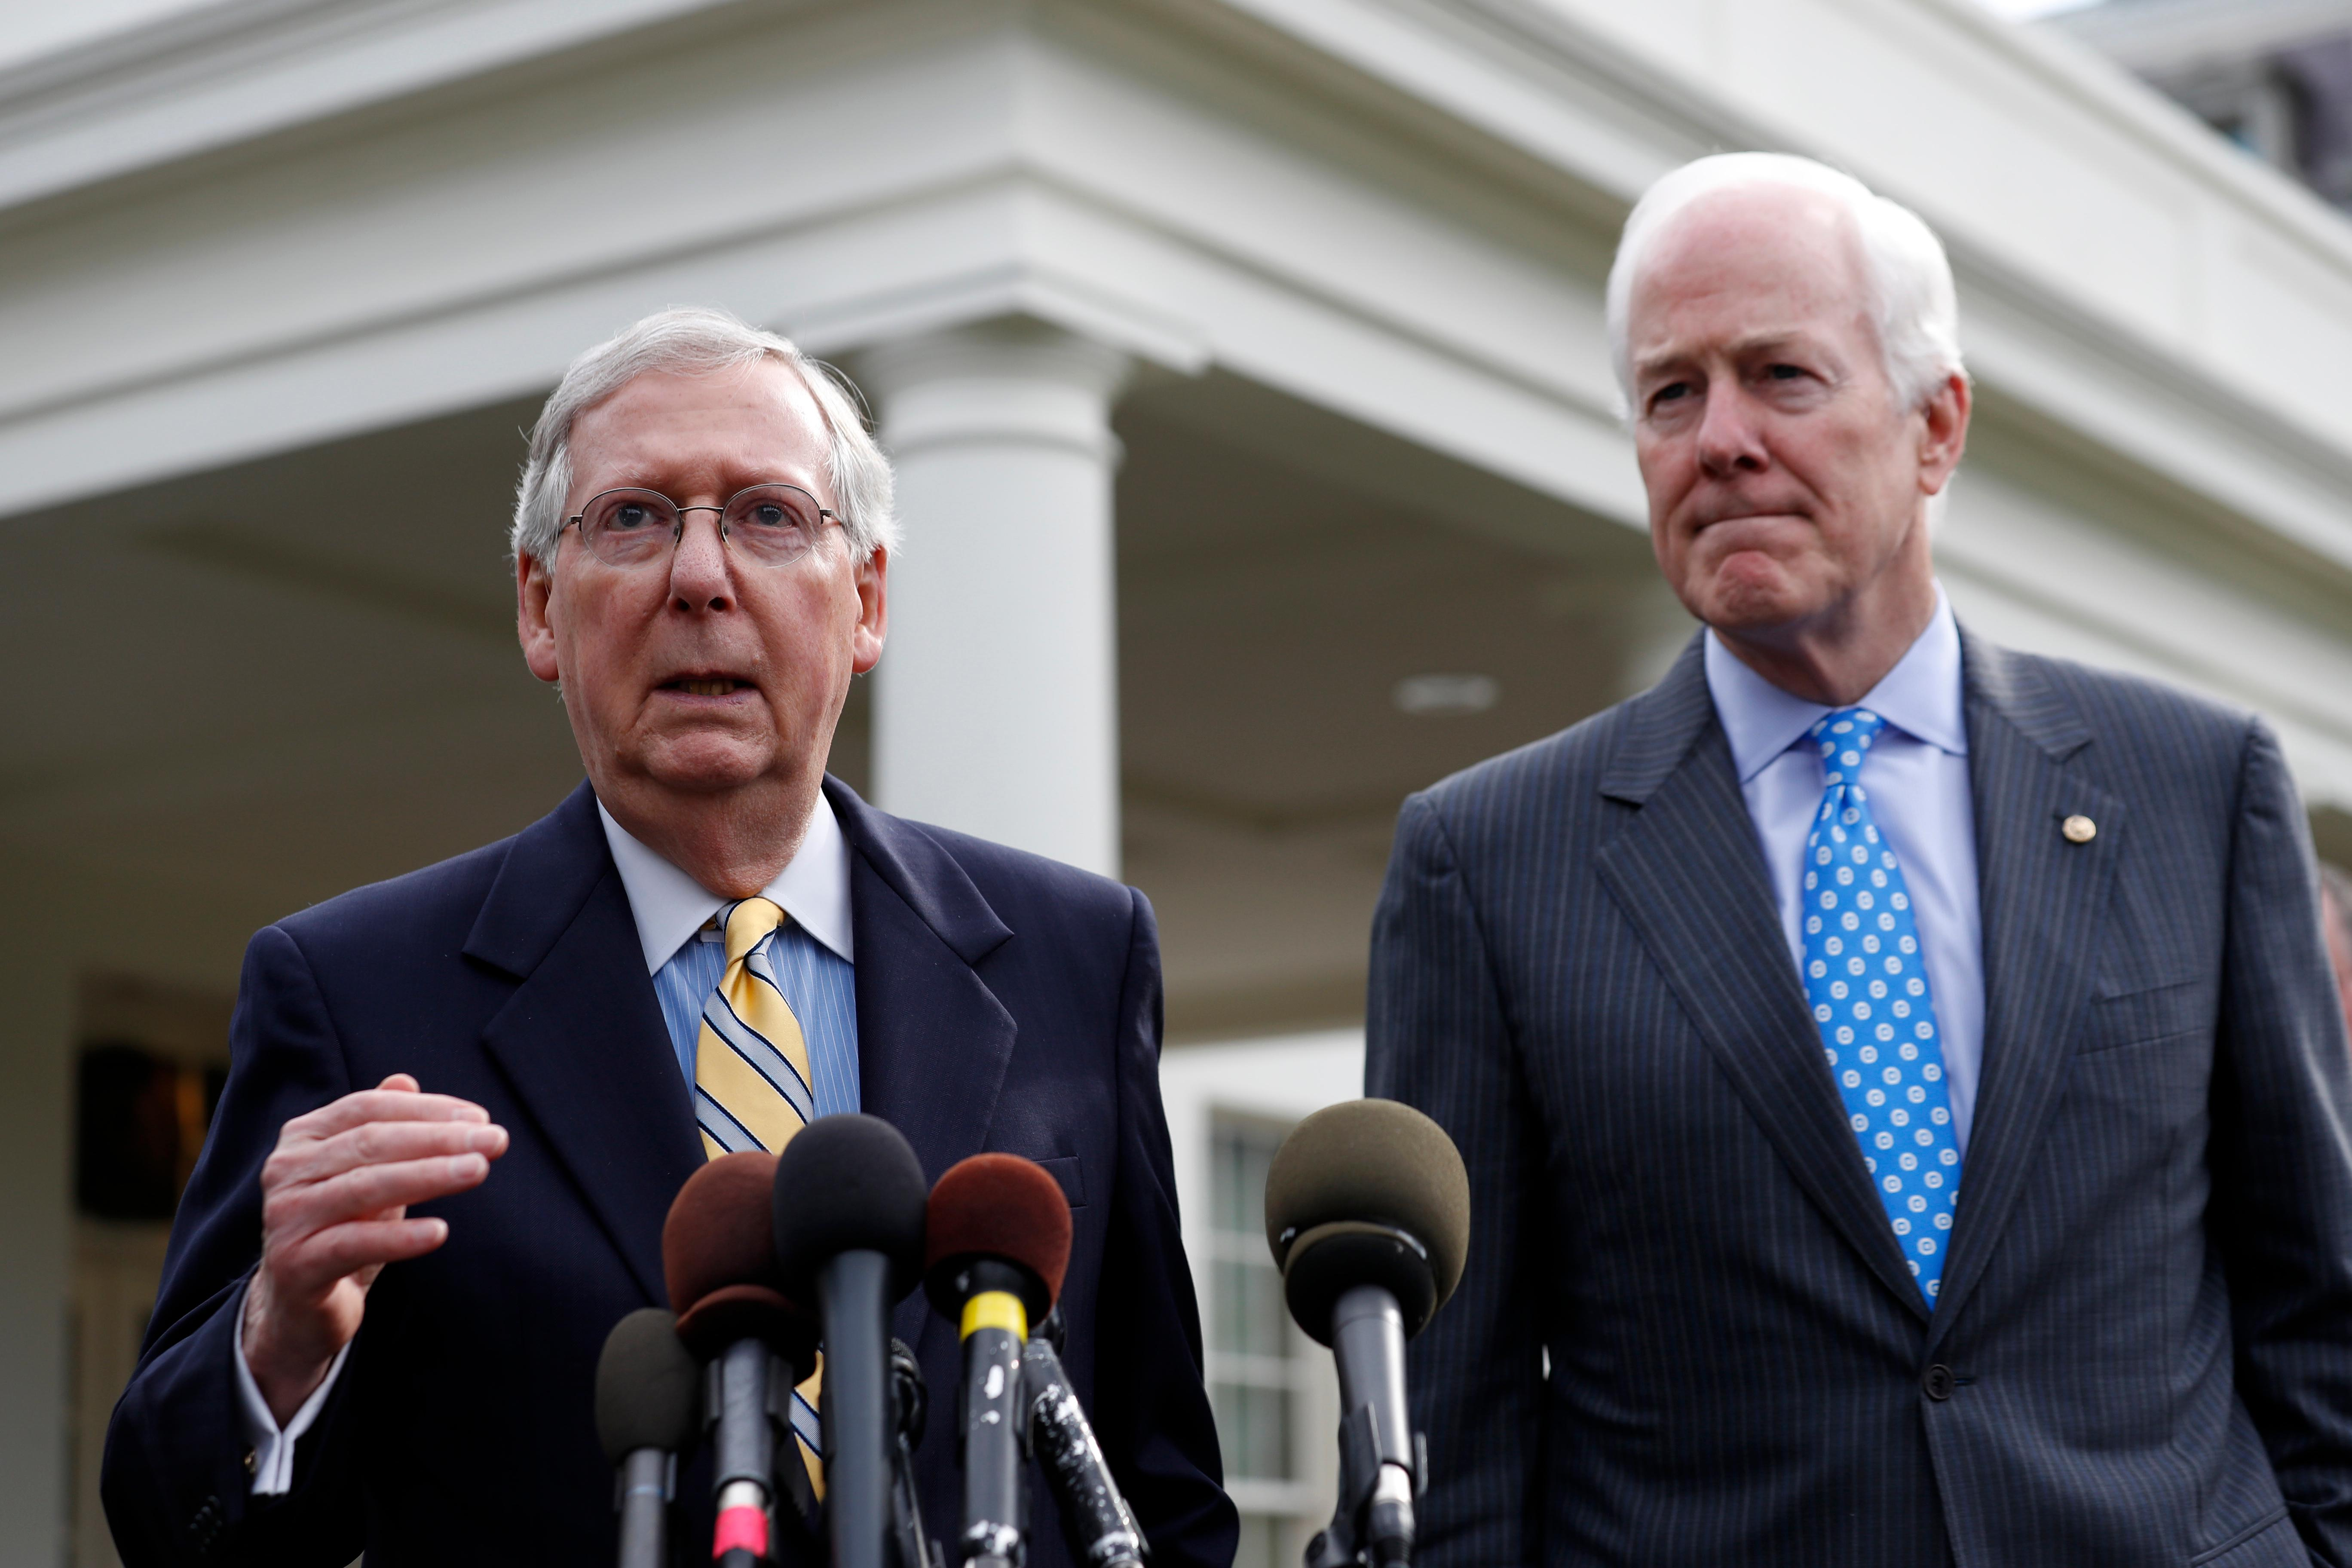 Senate Majority Leader Mitch McConnell of Ky., left, and Senate Majority Whip Sen. John Cornyn, R-Texas speak with the media after they and other Senate Republicans had a meeting with President Donald Trump at the White House, Tuesday, June 27, 2017, in Washington. (AP Photo/Alex Brandon)